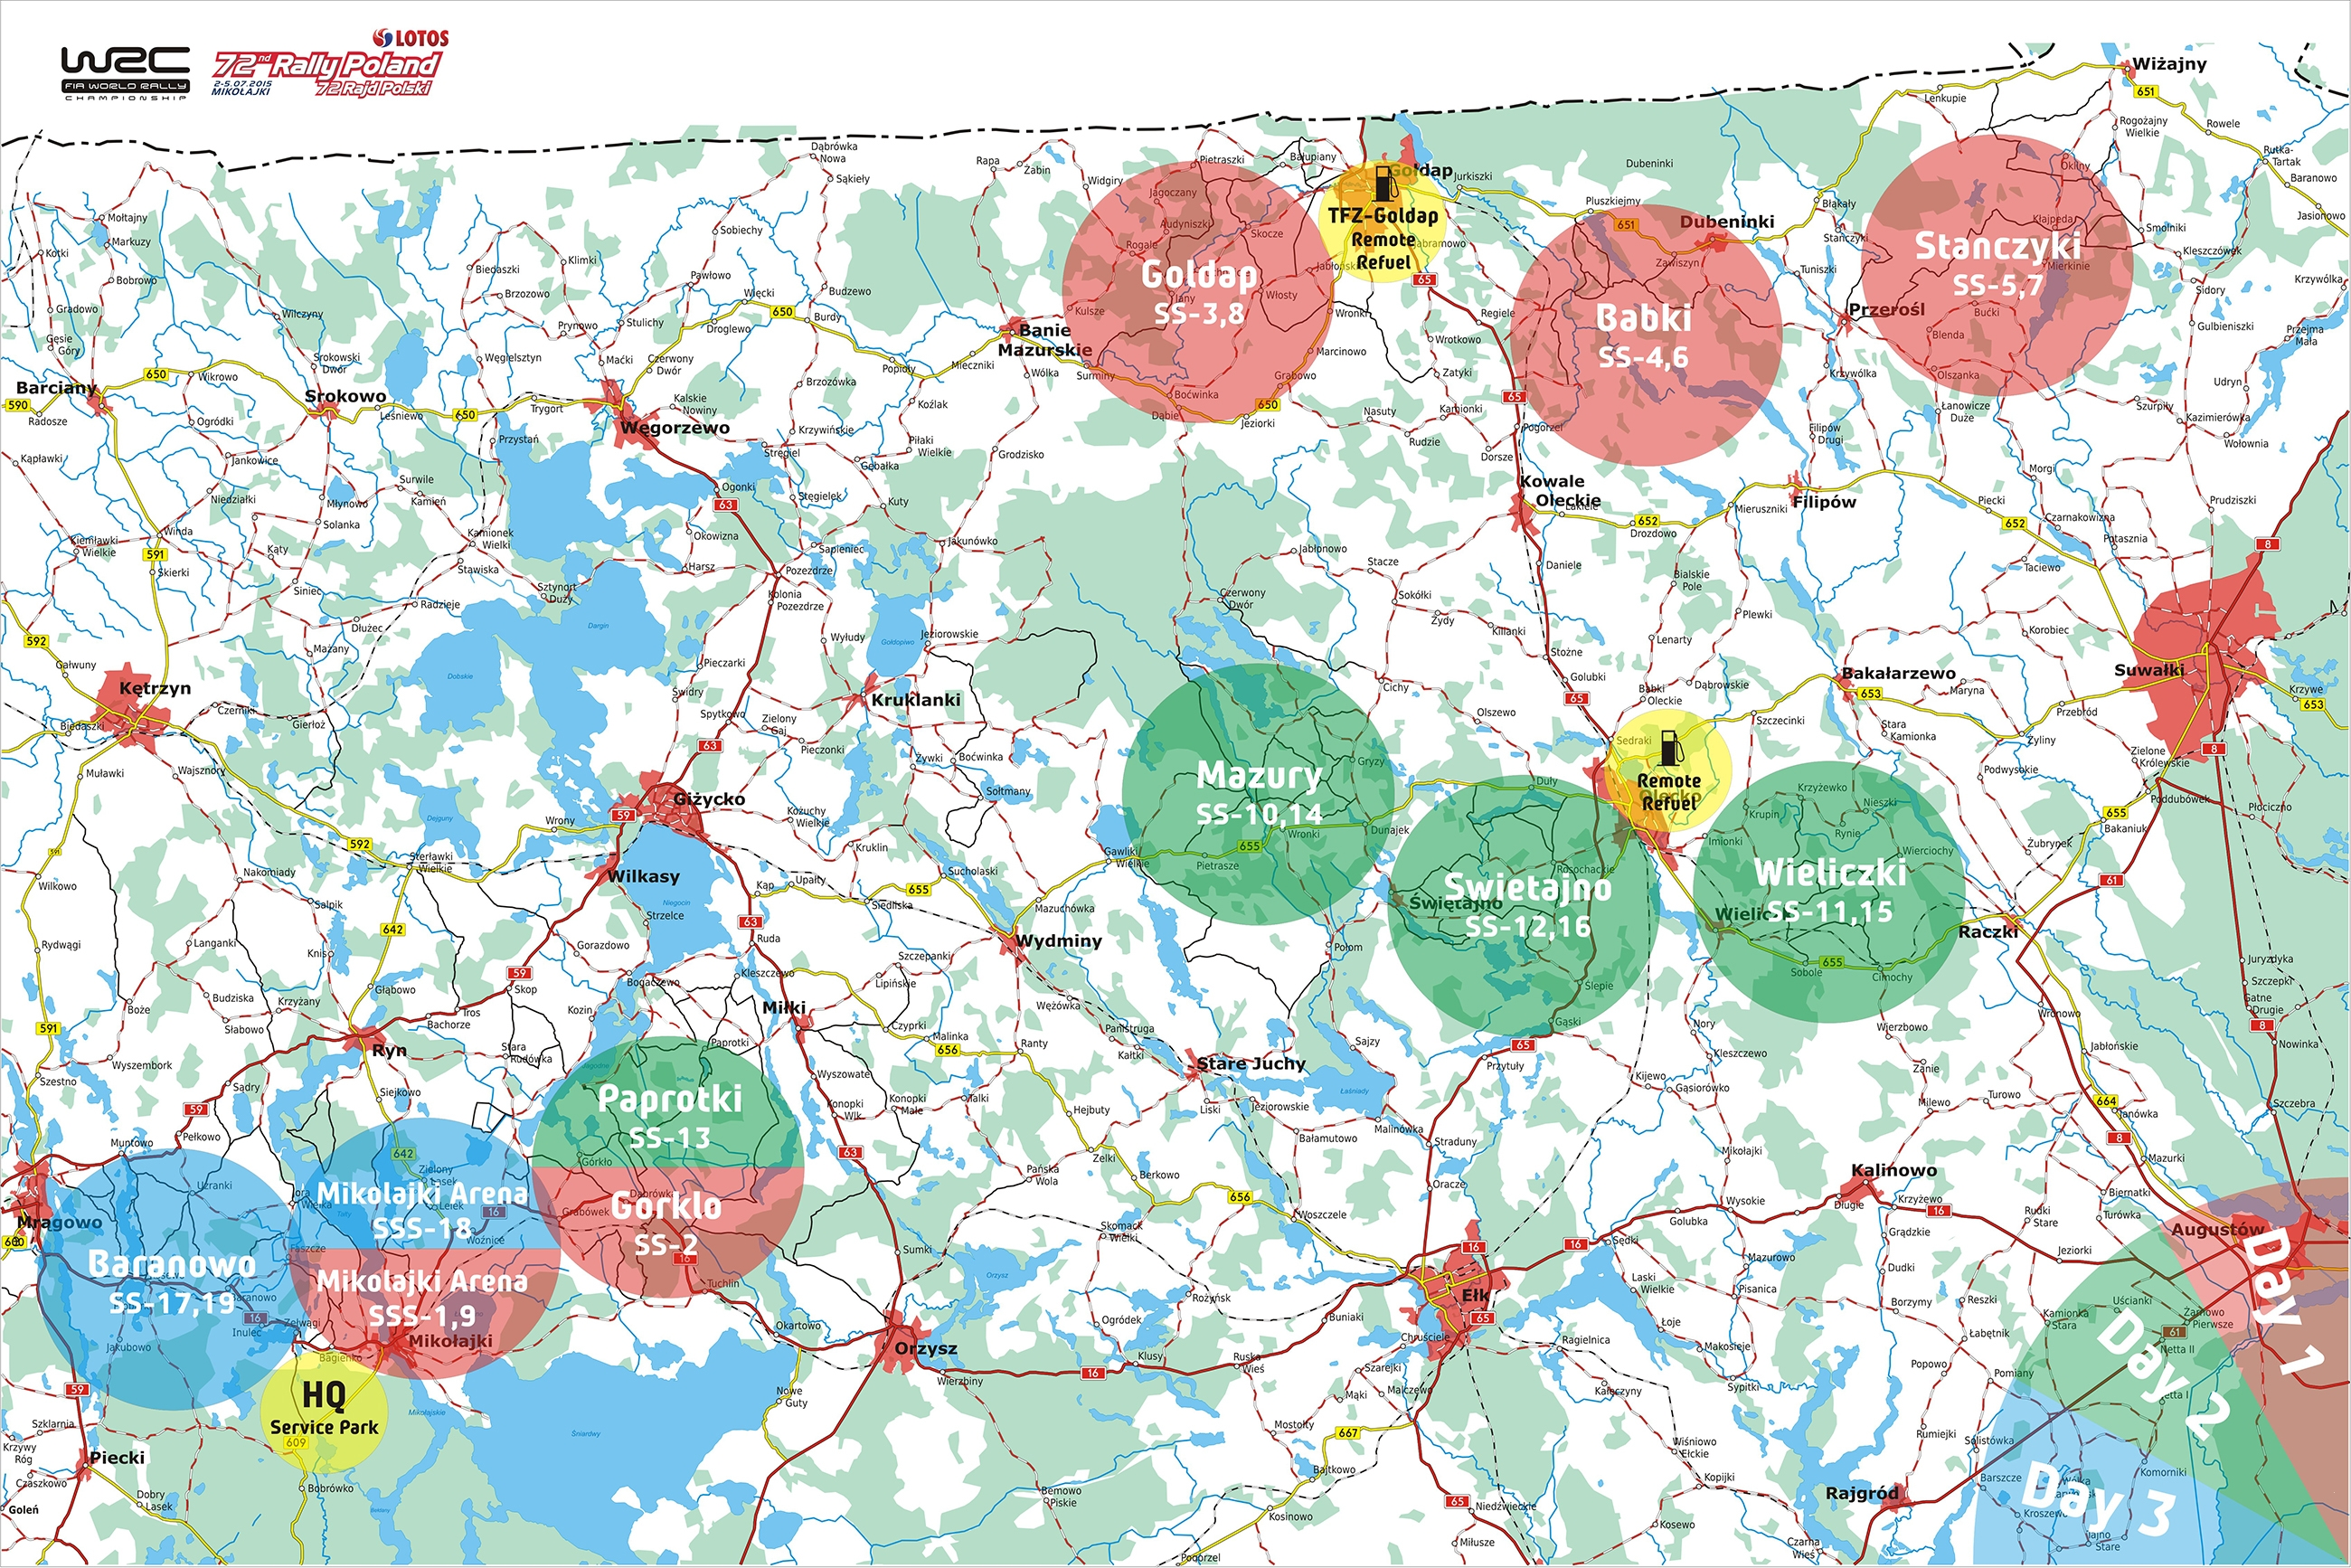 72_rally_poland_overview_map